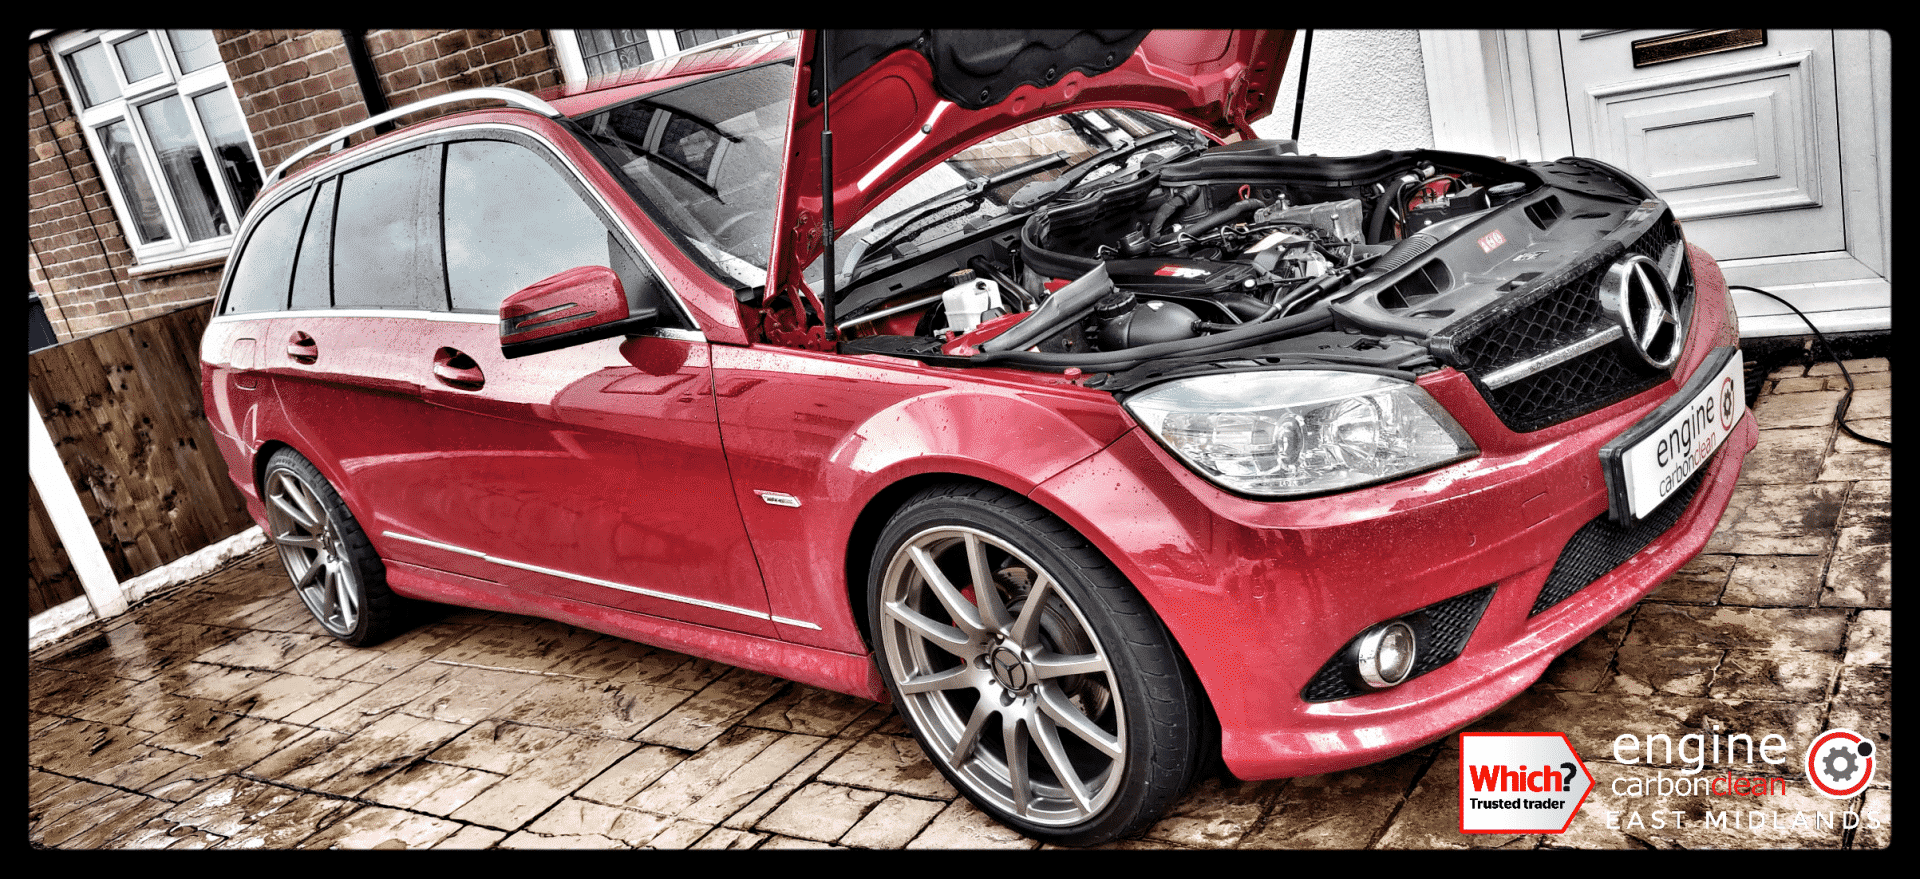 Diagnostic Consultation on a Mercedes C220 with an injector leak (2009 - 115,334 miles) - NO CLEAN